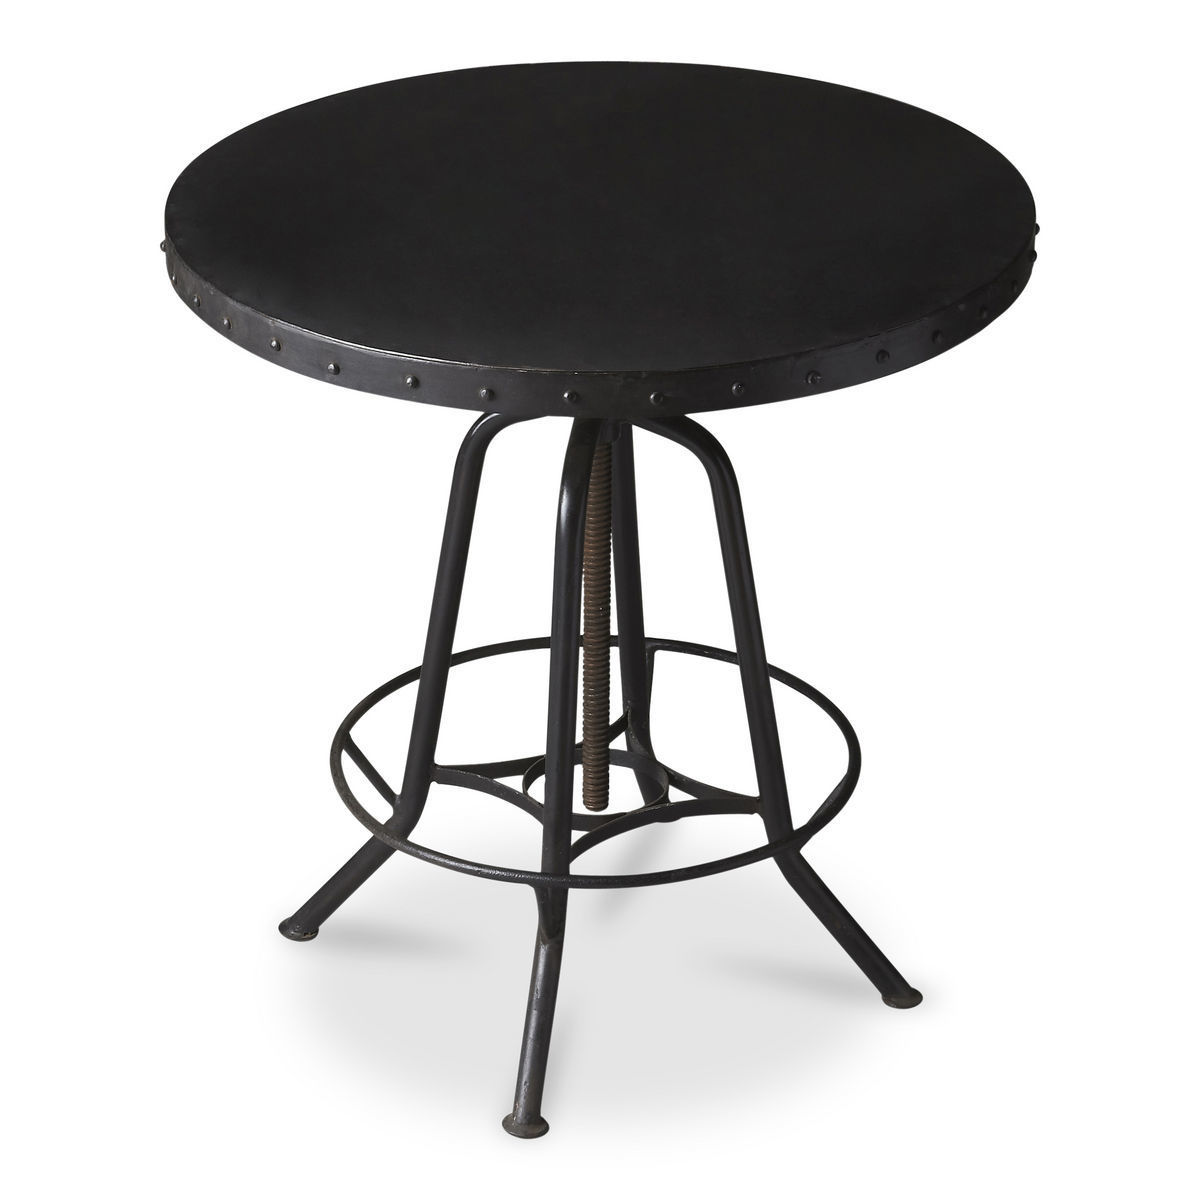 Studly Industrial Hall Pub Table 1200025